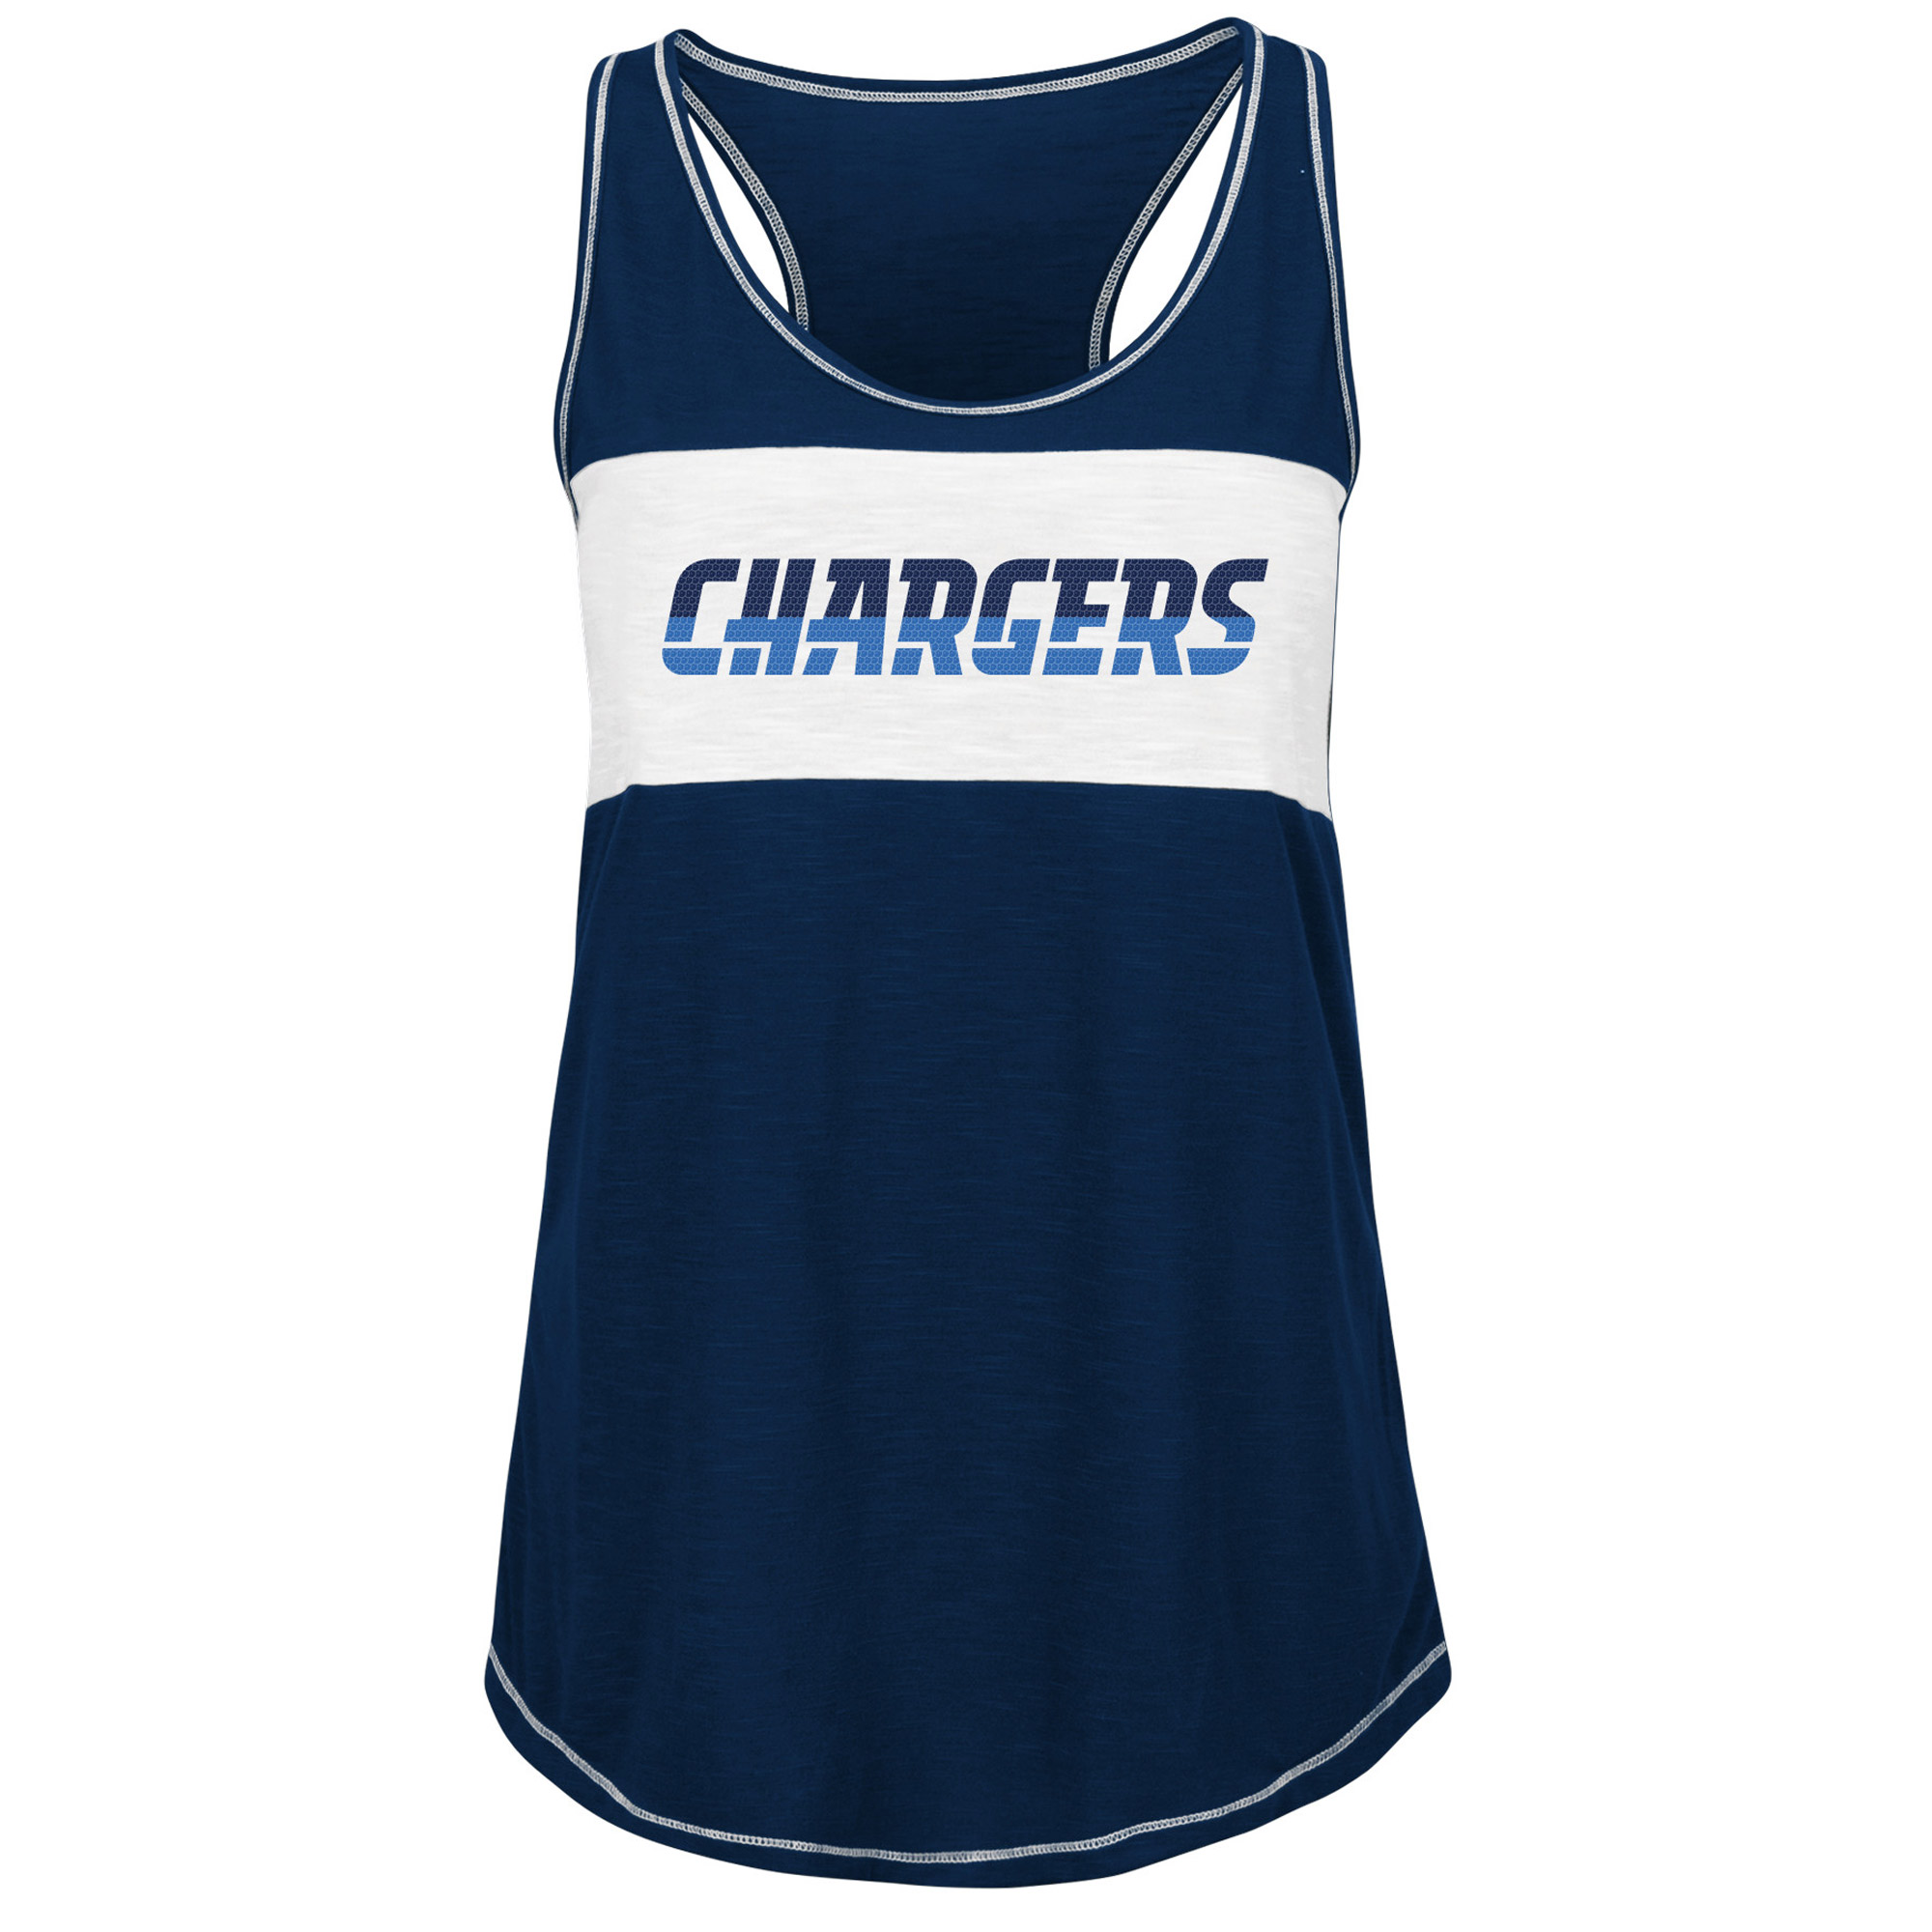 Los Angeles Chargers Majestic Women's Game Time Glitz Tank Top - Navy